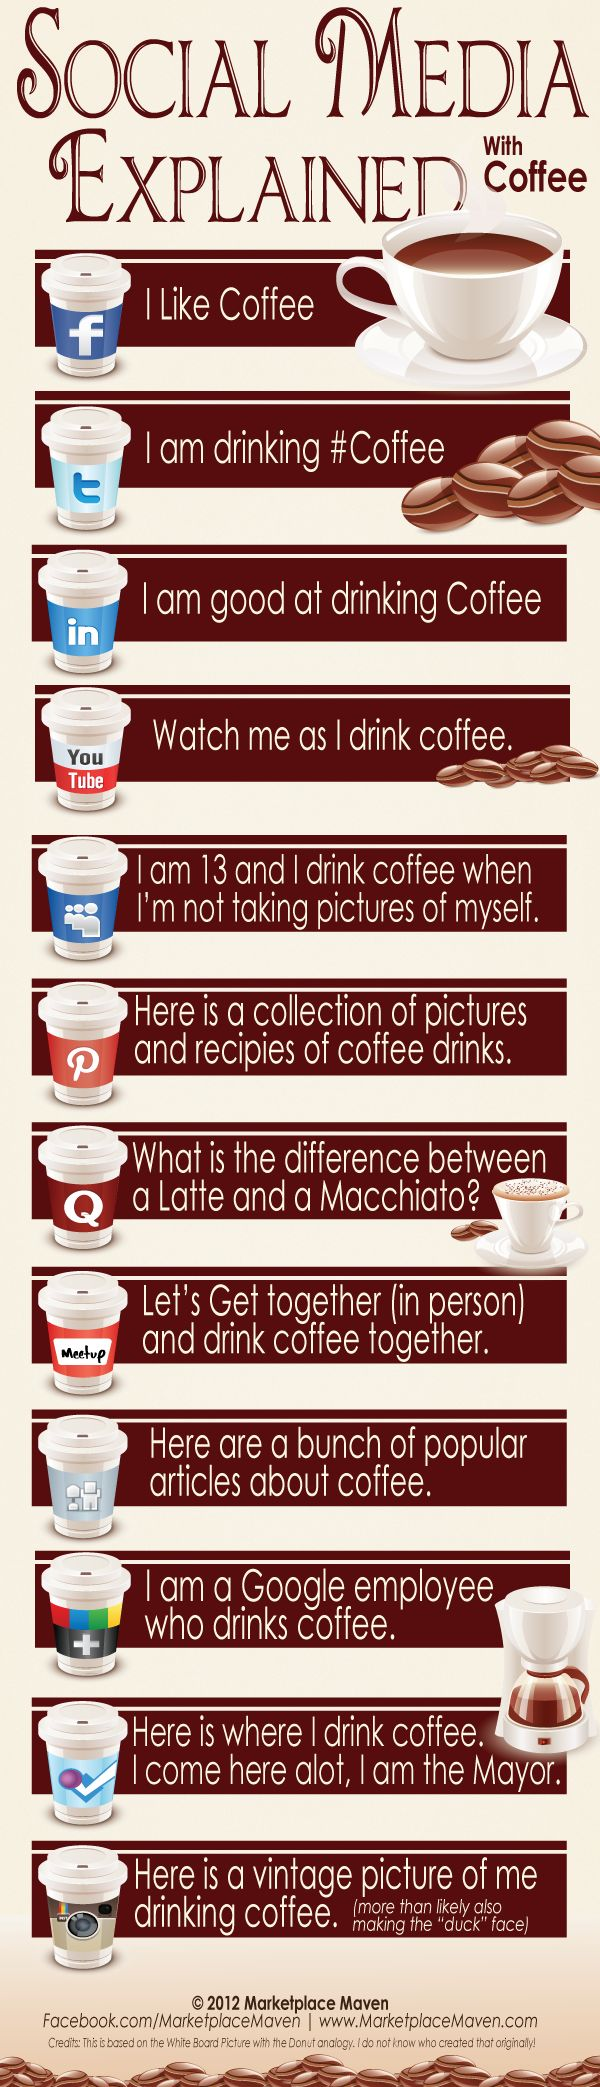 Social Media explained with cofee #infographic